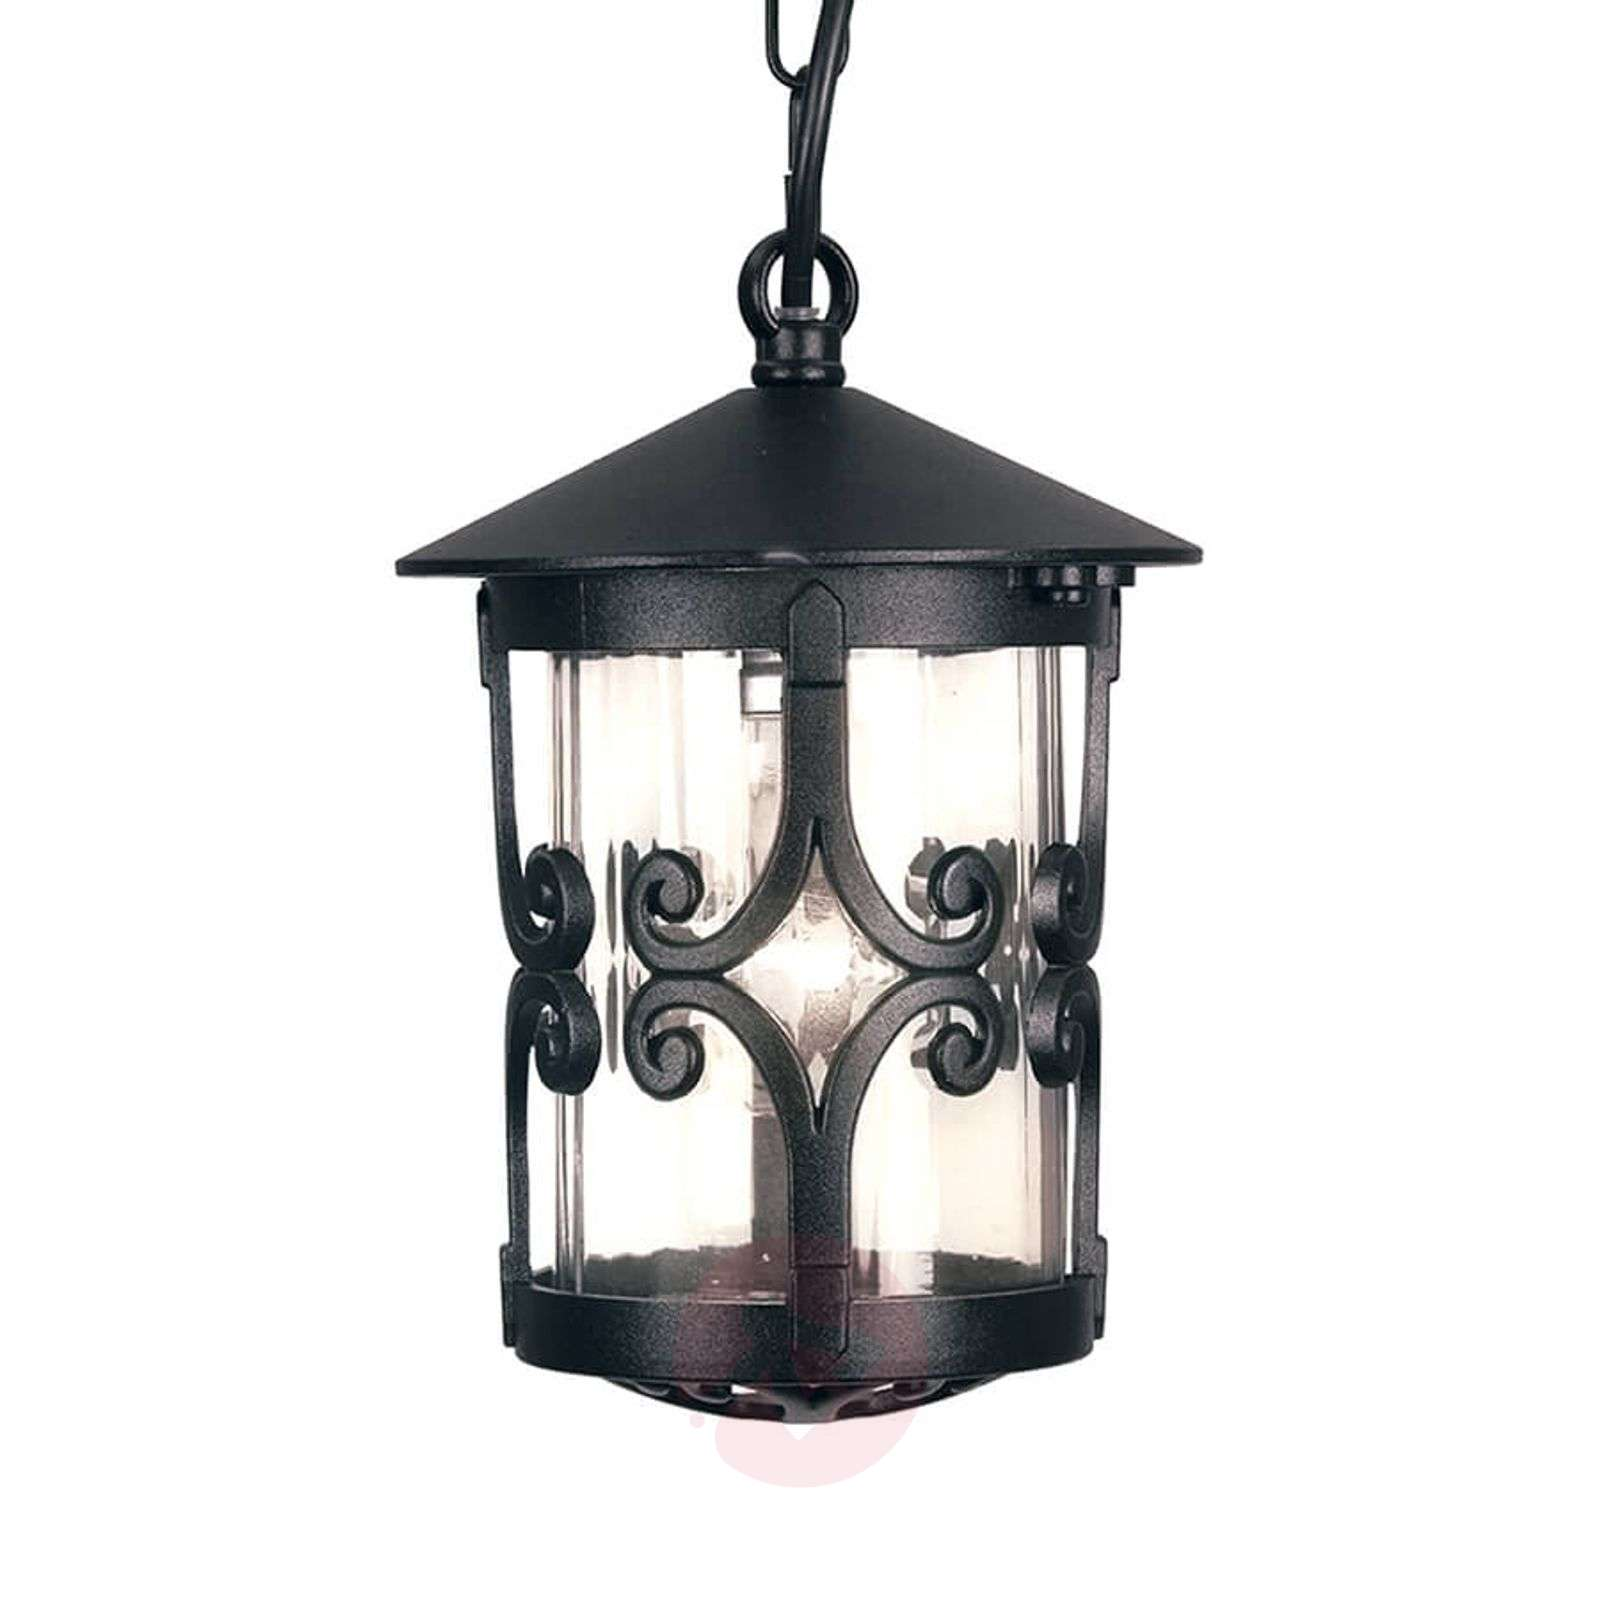 Hereford outdoor hanging light with flourishes-3048695-01